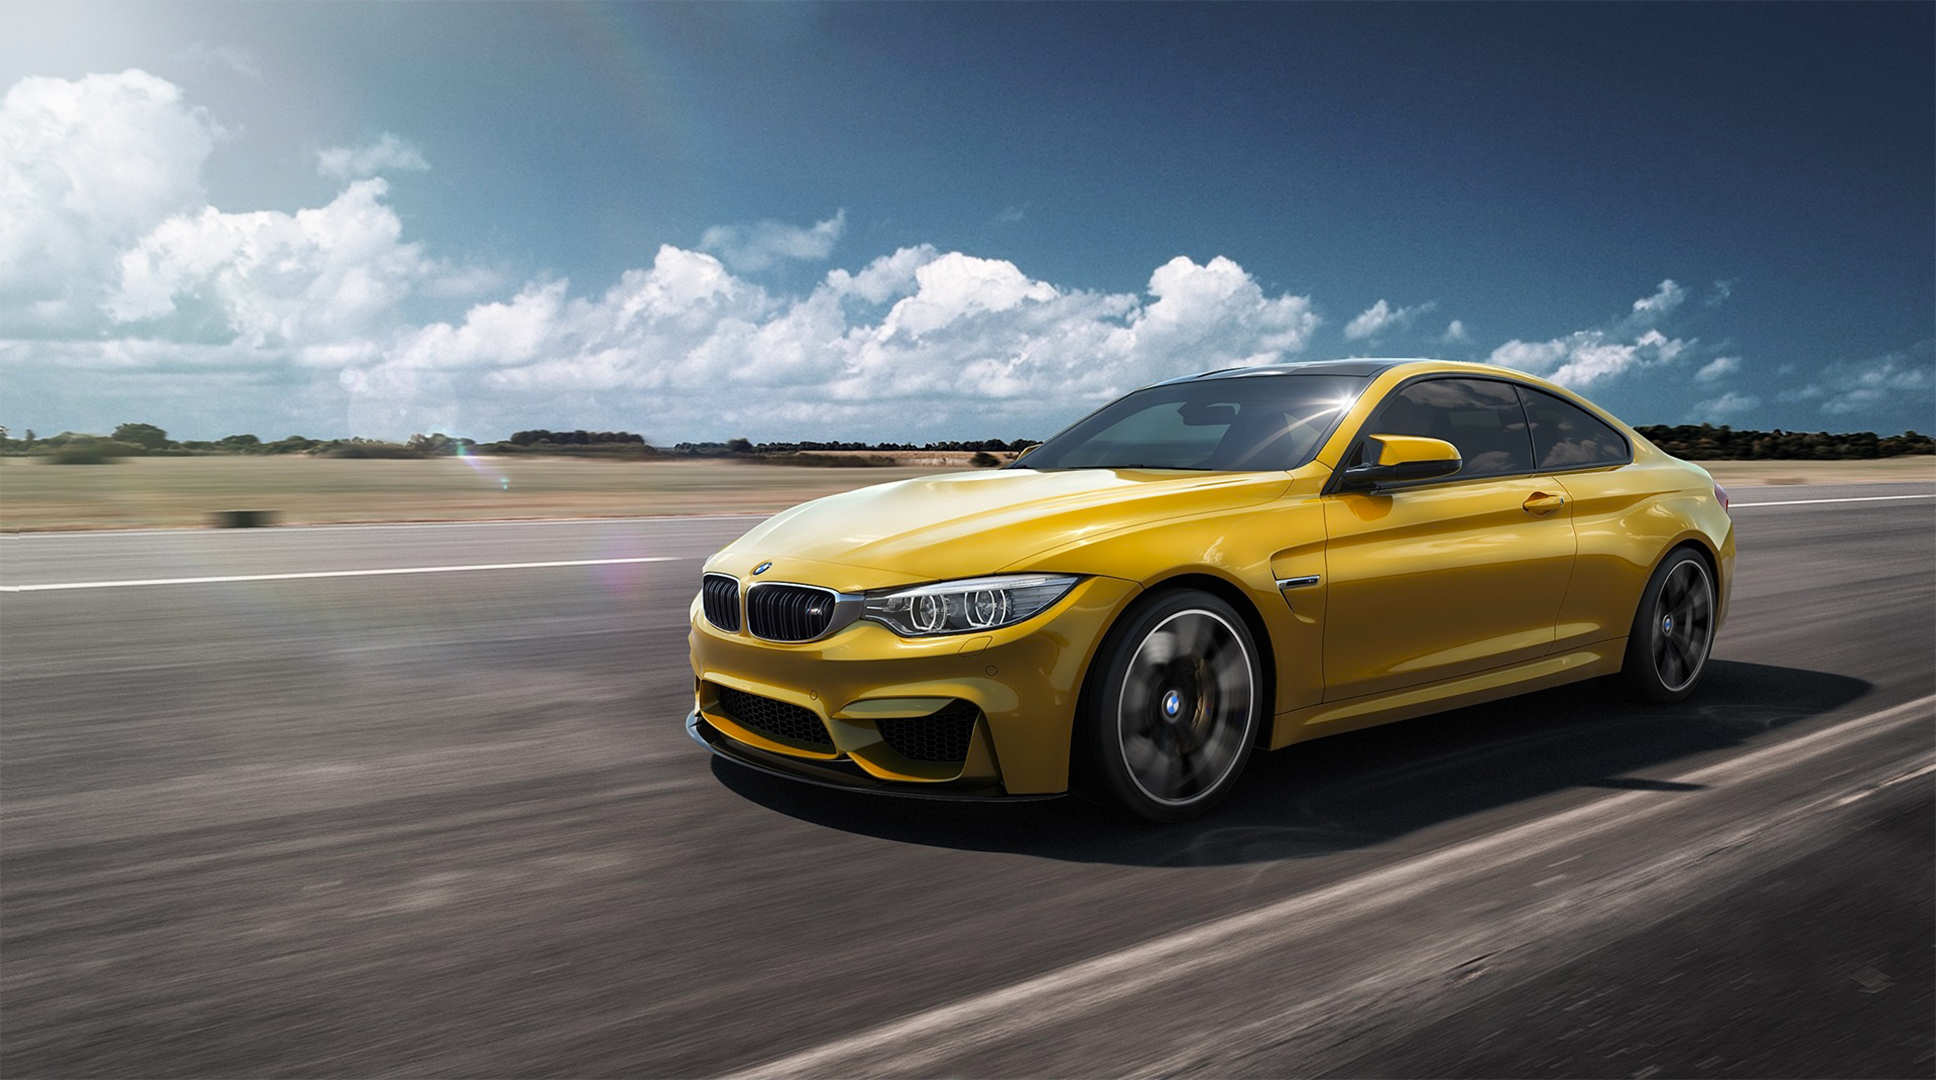 1936x1080 - BMW M4 Wallpapers 16